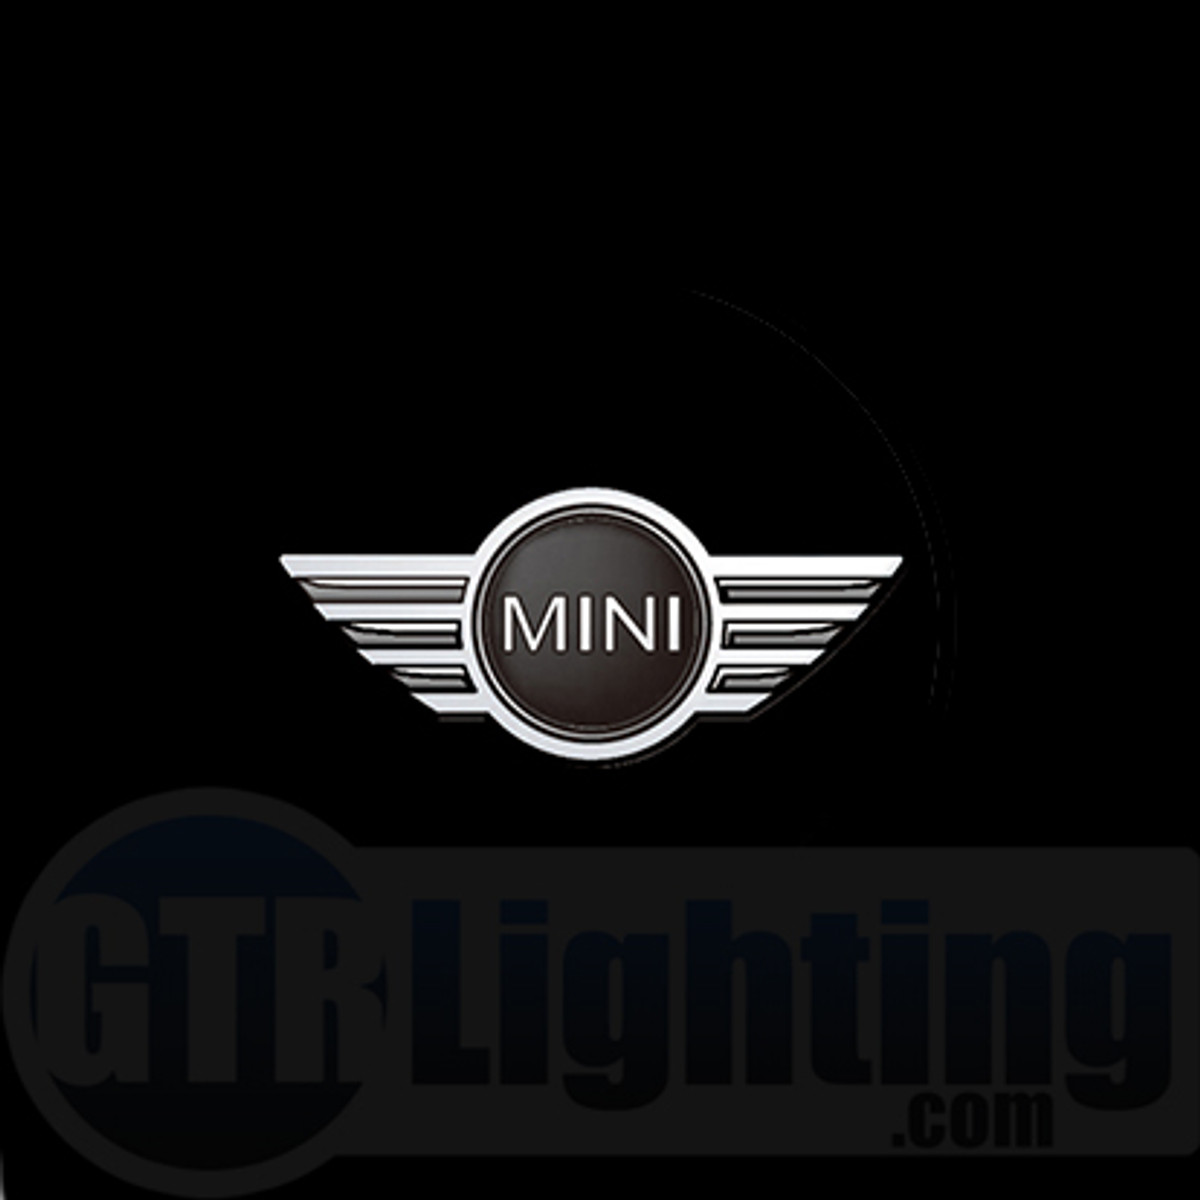 gtr lighting led logo projectors mini cooper logo 44. Black Bedroom Furniture Sets. Home Design Ideas